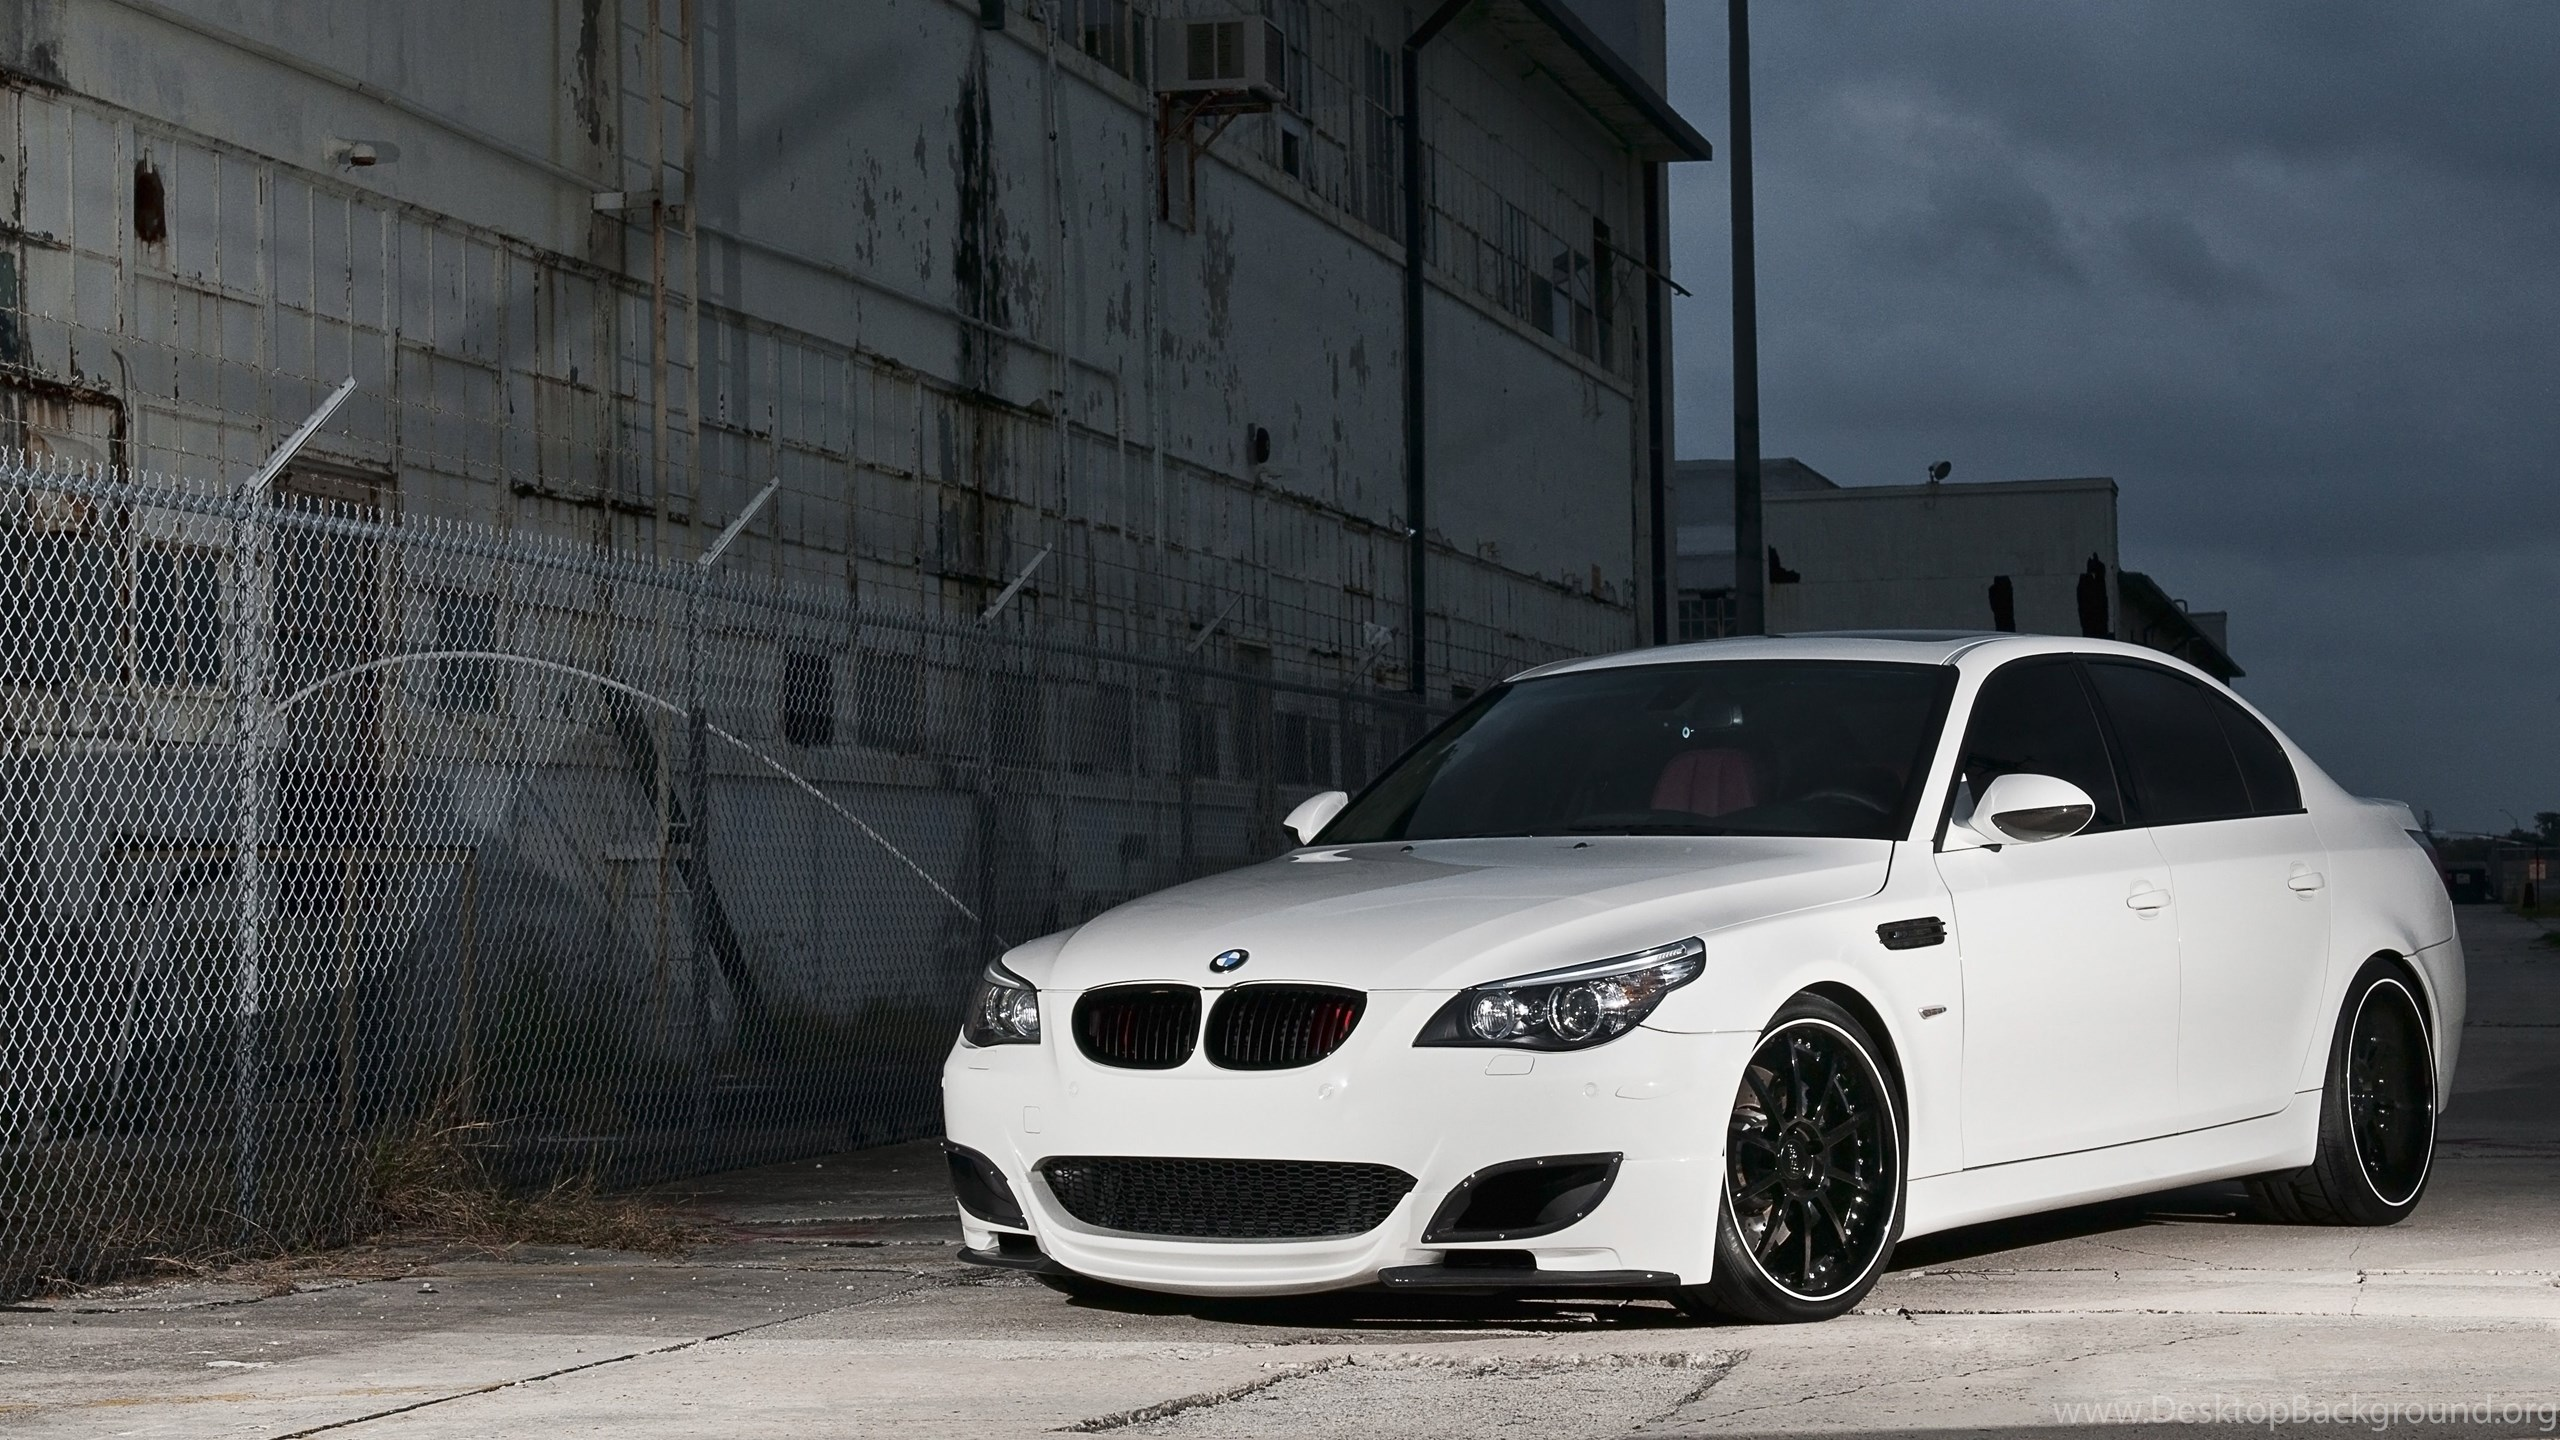 4k Wallpapers Cars White Bmw E60 M5 Lattice Fence Barbed